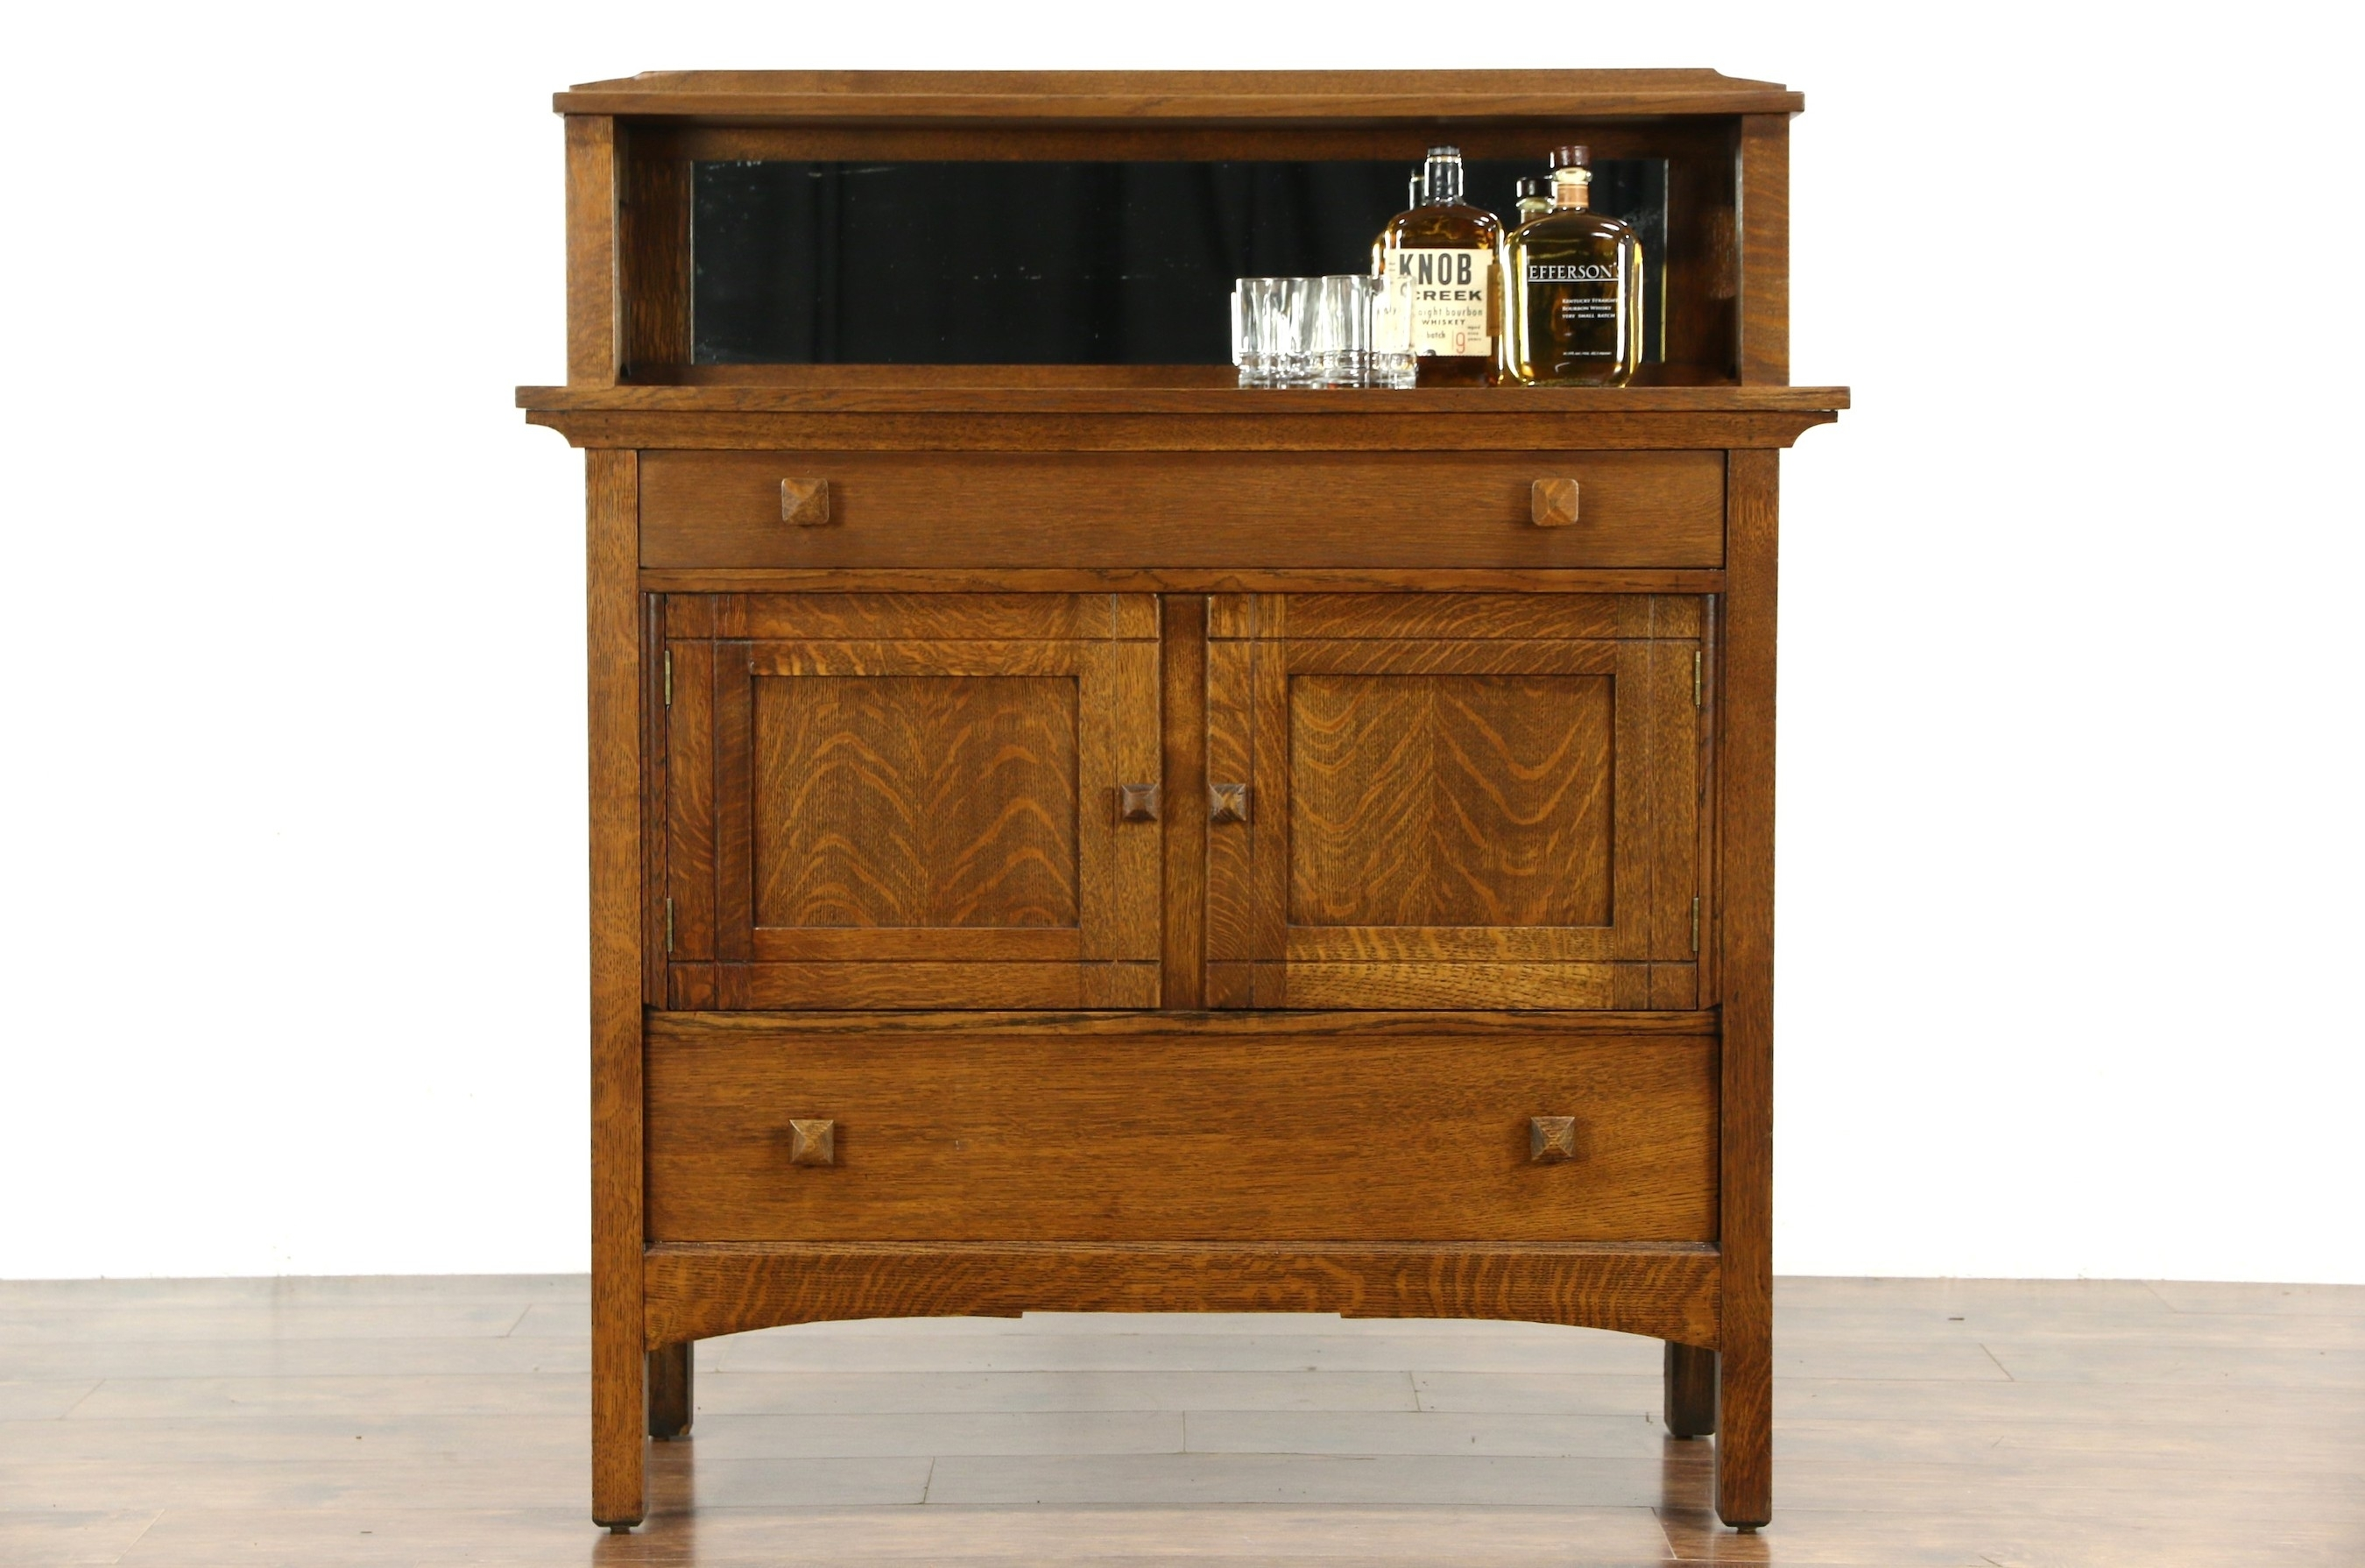 Sold - Art & Crafts Mission Oak Antique Craftsman Sideboard Server for Craftsman Sideboards (Image 25 of 30)